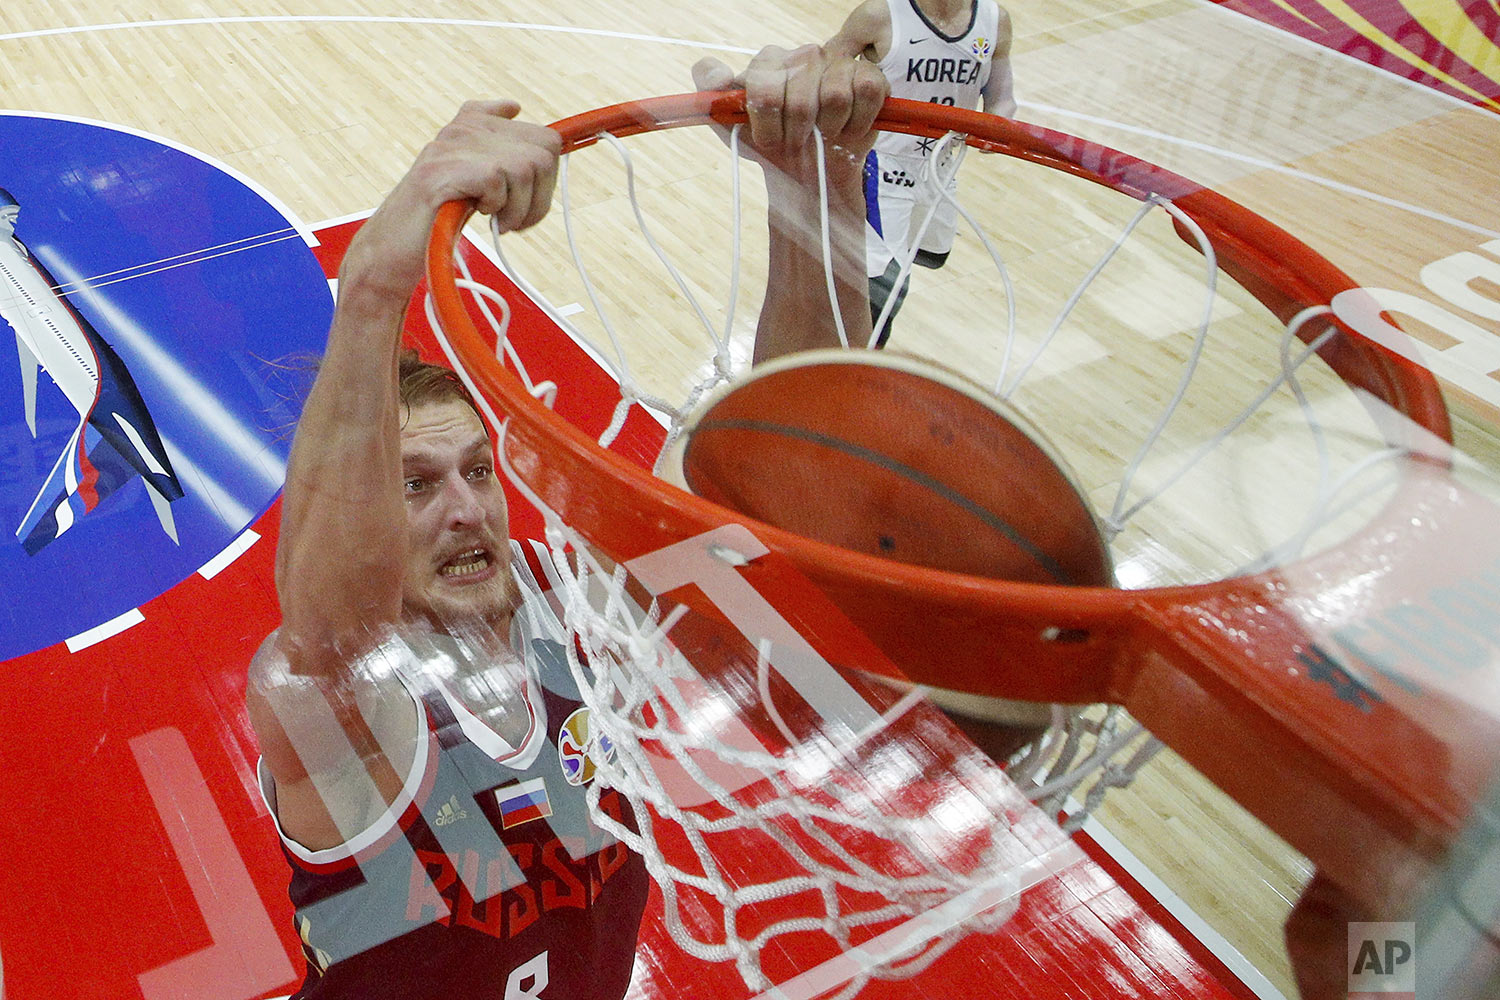 Vladimir Ivlev, of Russia, dunks the ball during the group B game against South Korea in the FIBA Basketball World Cup, at the Sport Center in Wuhan in central China's Hubei province, Monday, Sept. 2, 2019. (AP Photo/Andy Wong)